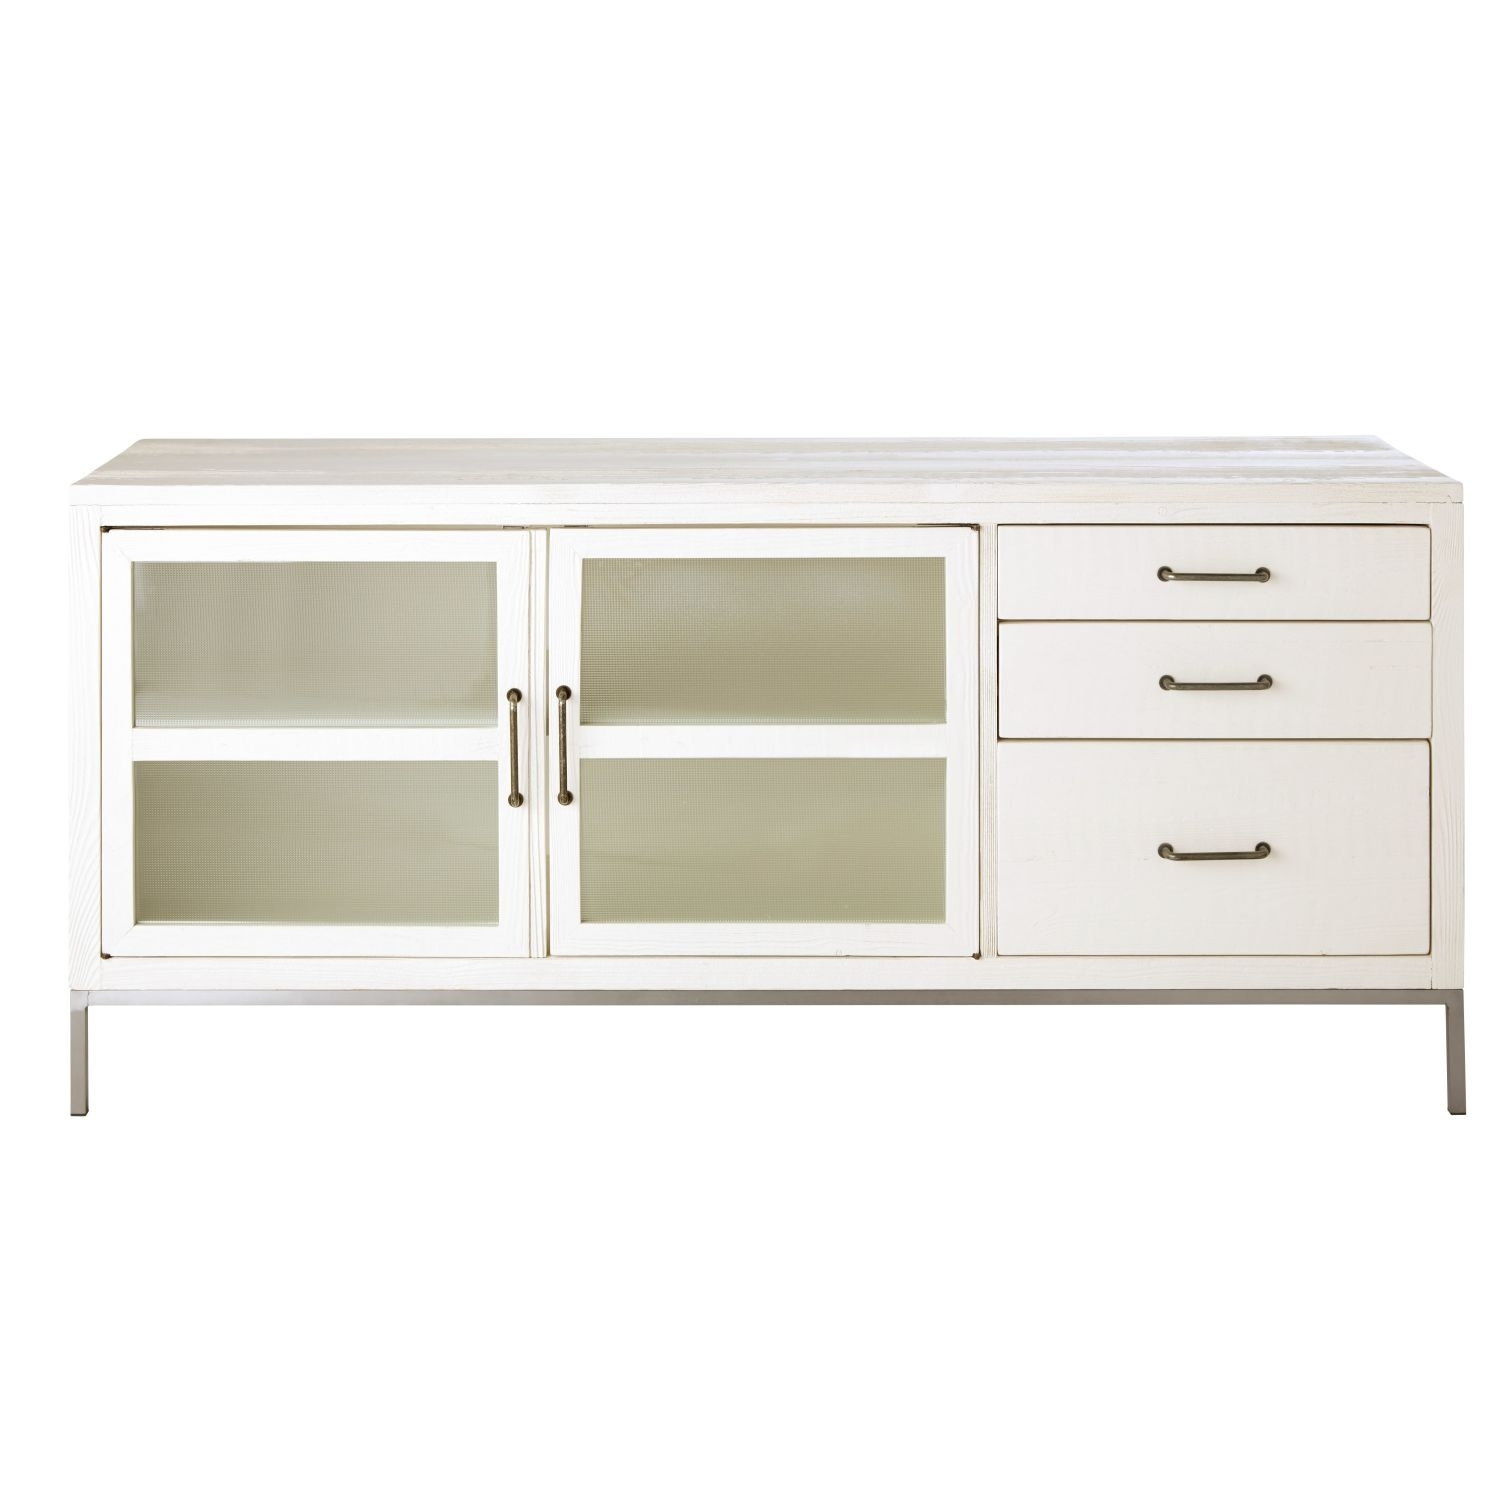 White Recycled Pine 2 Door 3 Drawer Sideboard | Maisons Du Monde With Most Up To Date Aged Pine 3 Drawer 2 Door Sideboards (#20 of 20)